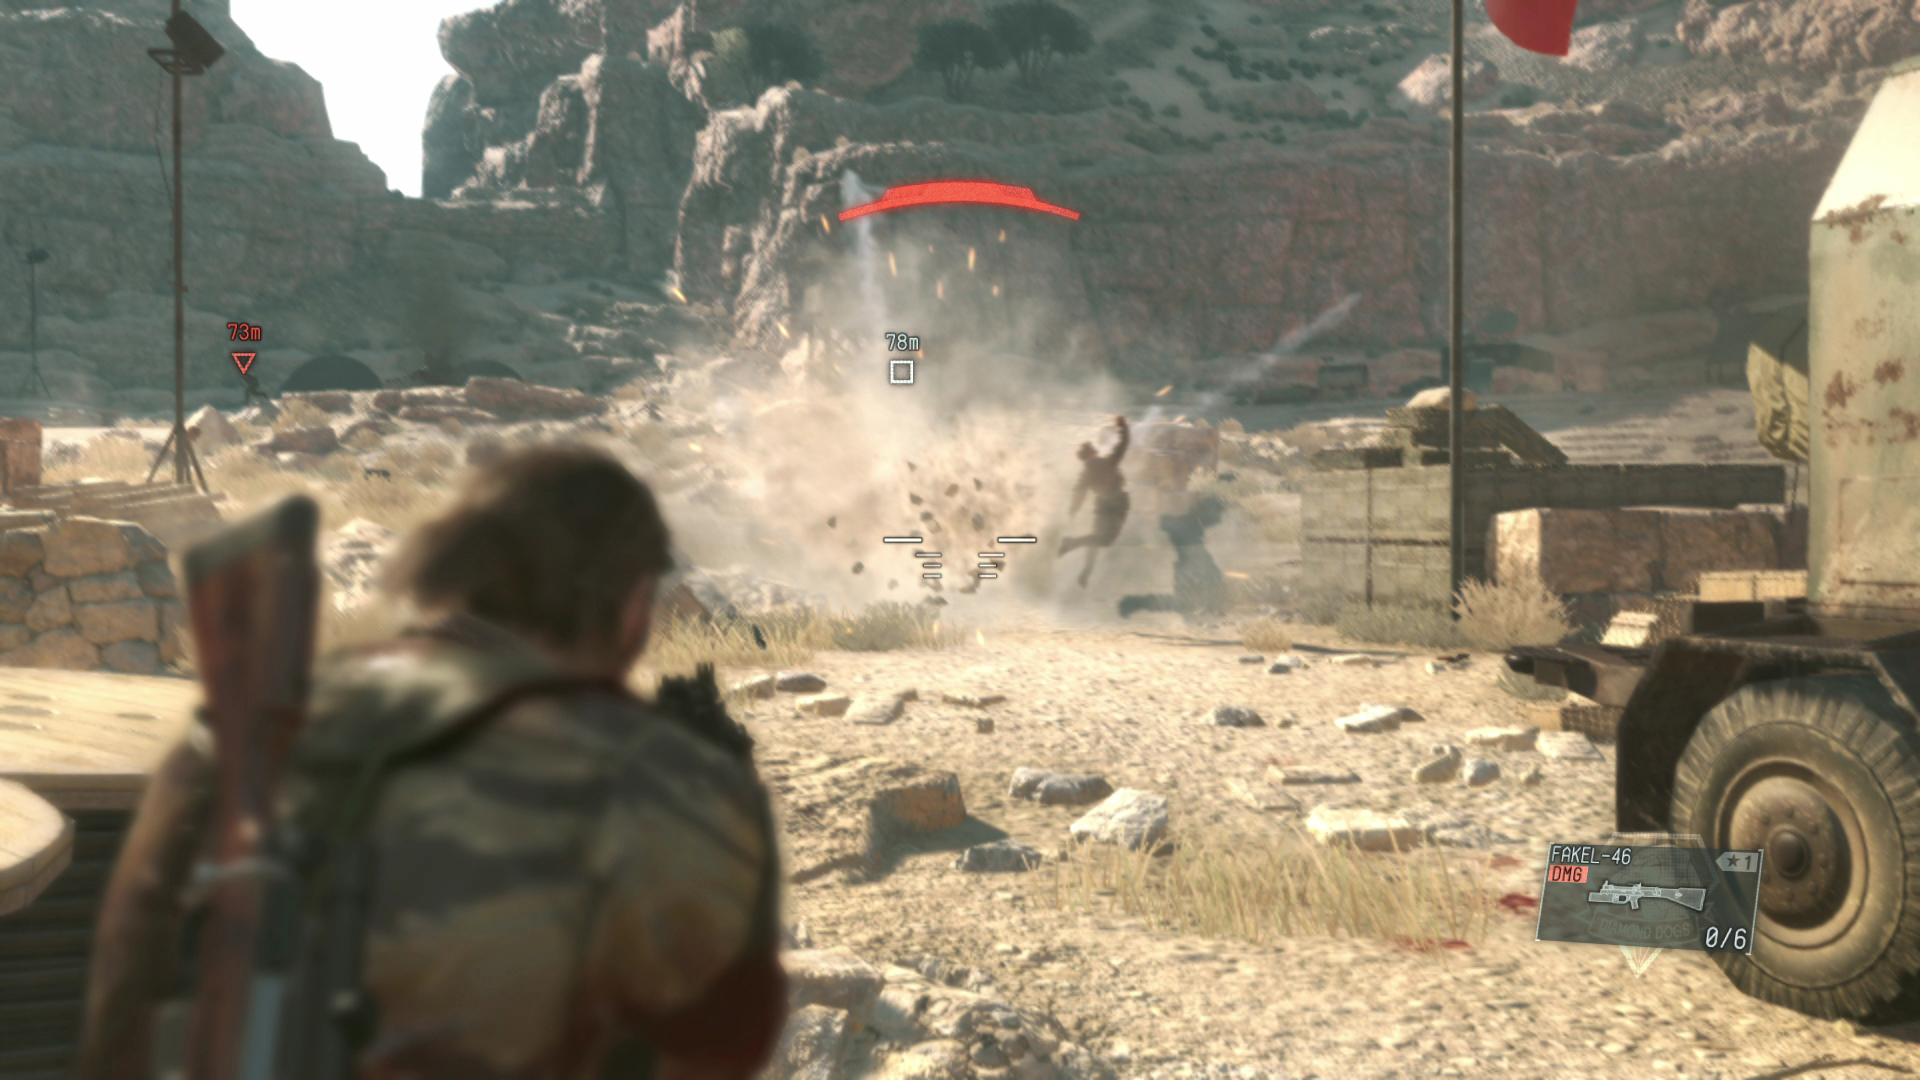 Stealth isn't the only way in Metal Gear Solid V